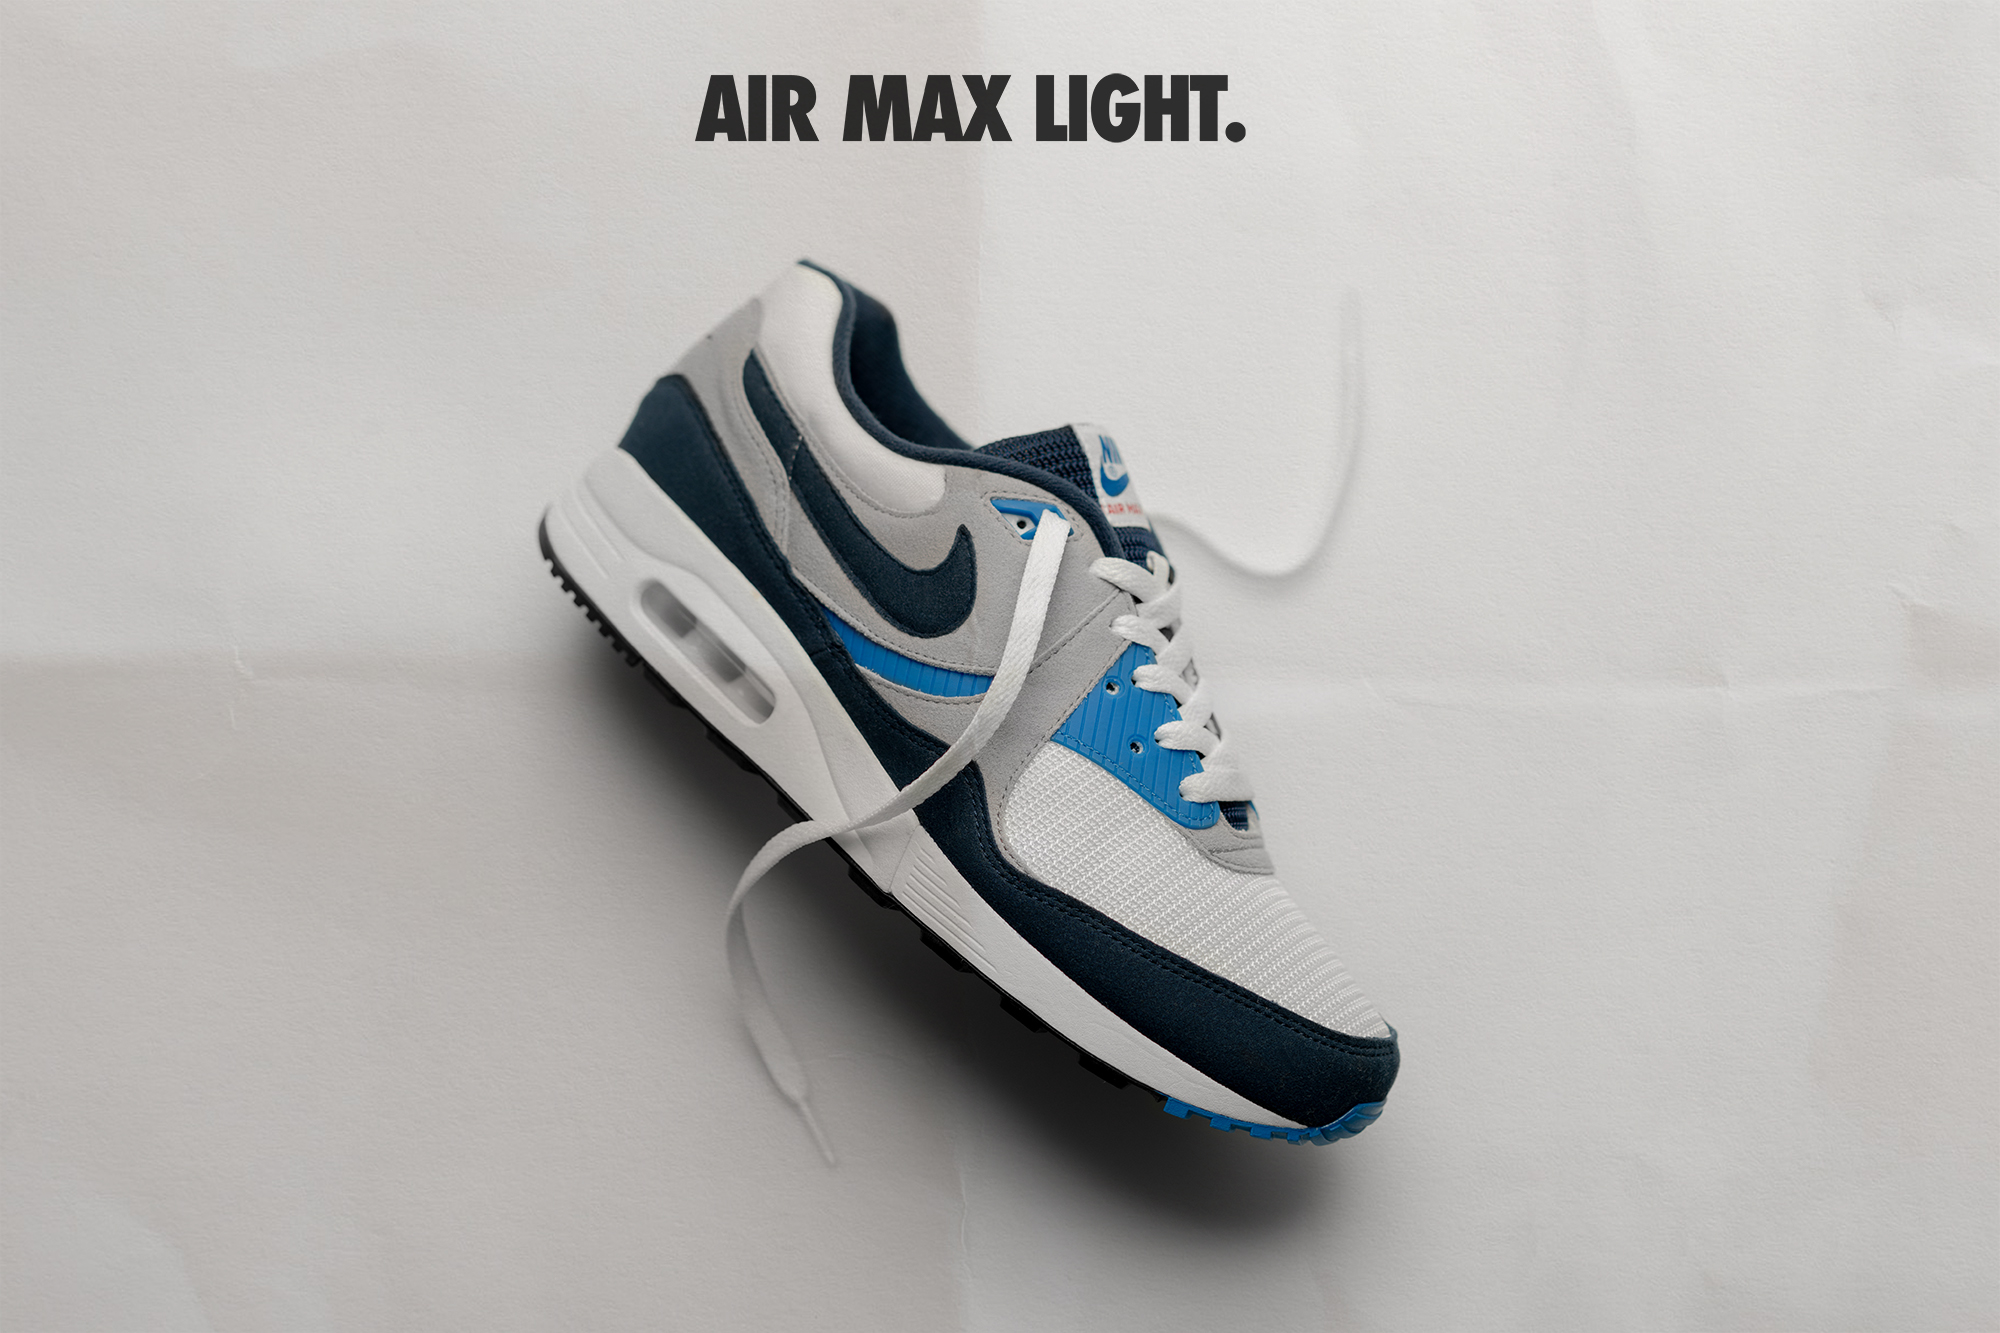 Nike Air Max Light OG – 'White/Blue'